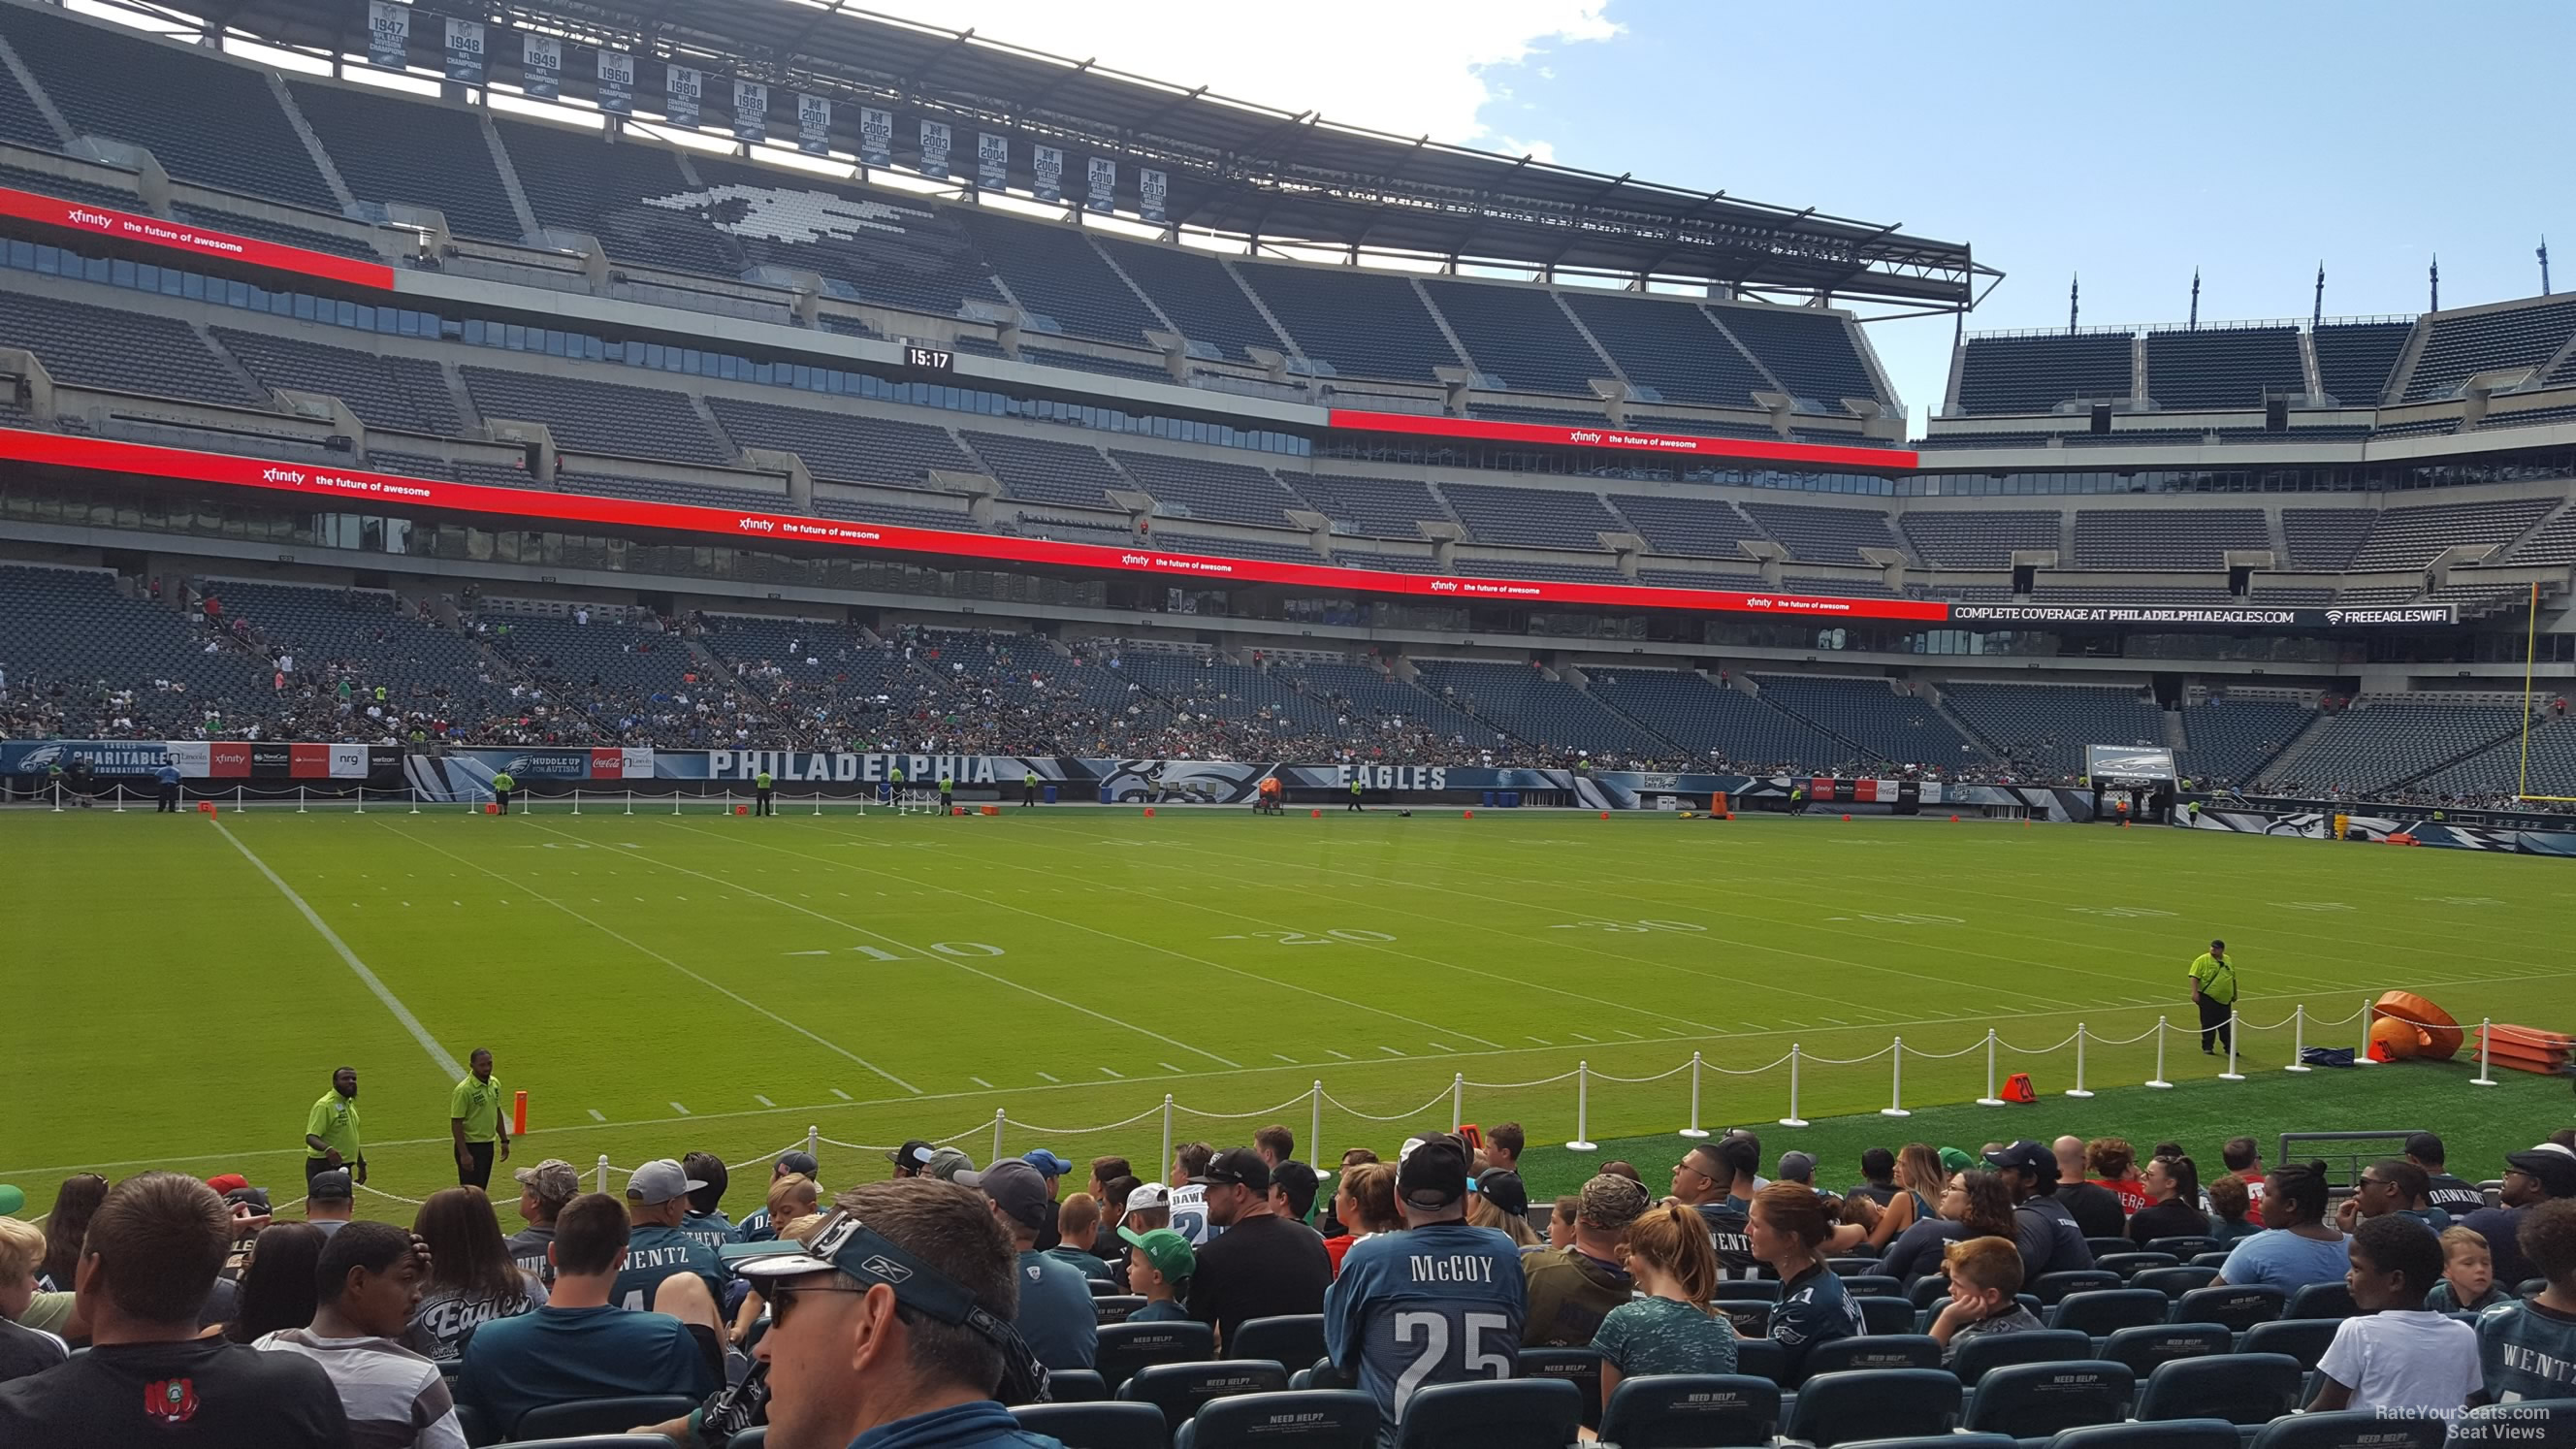 Section 135 seat view